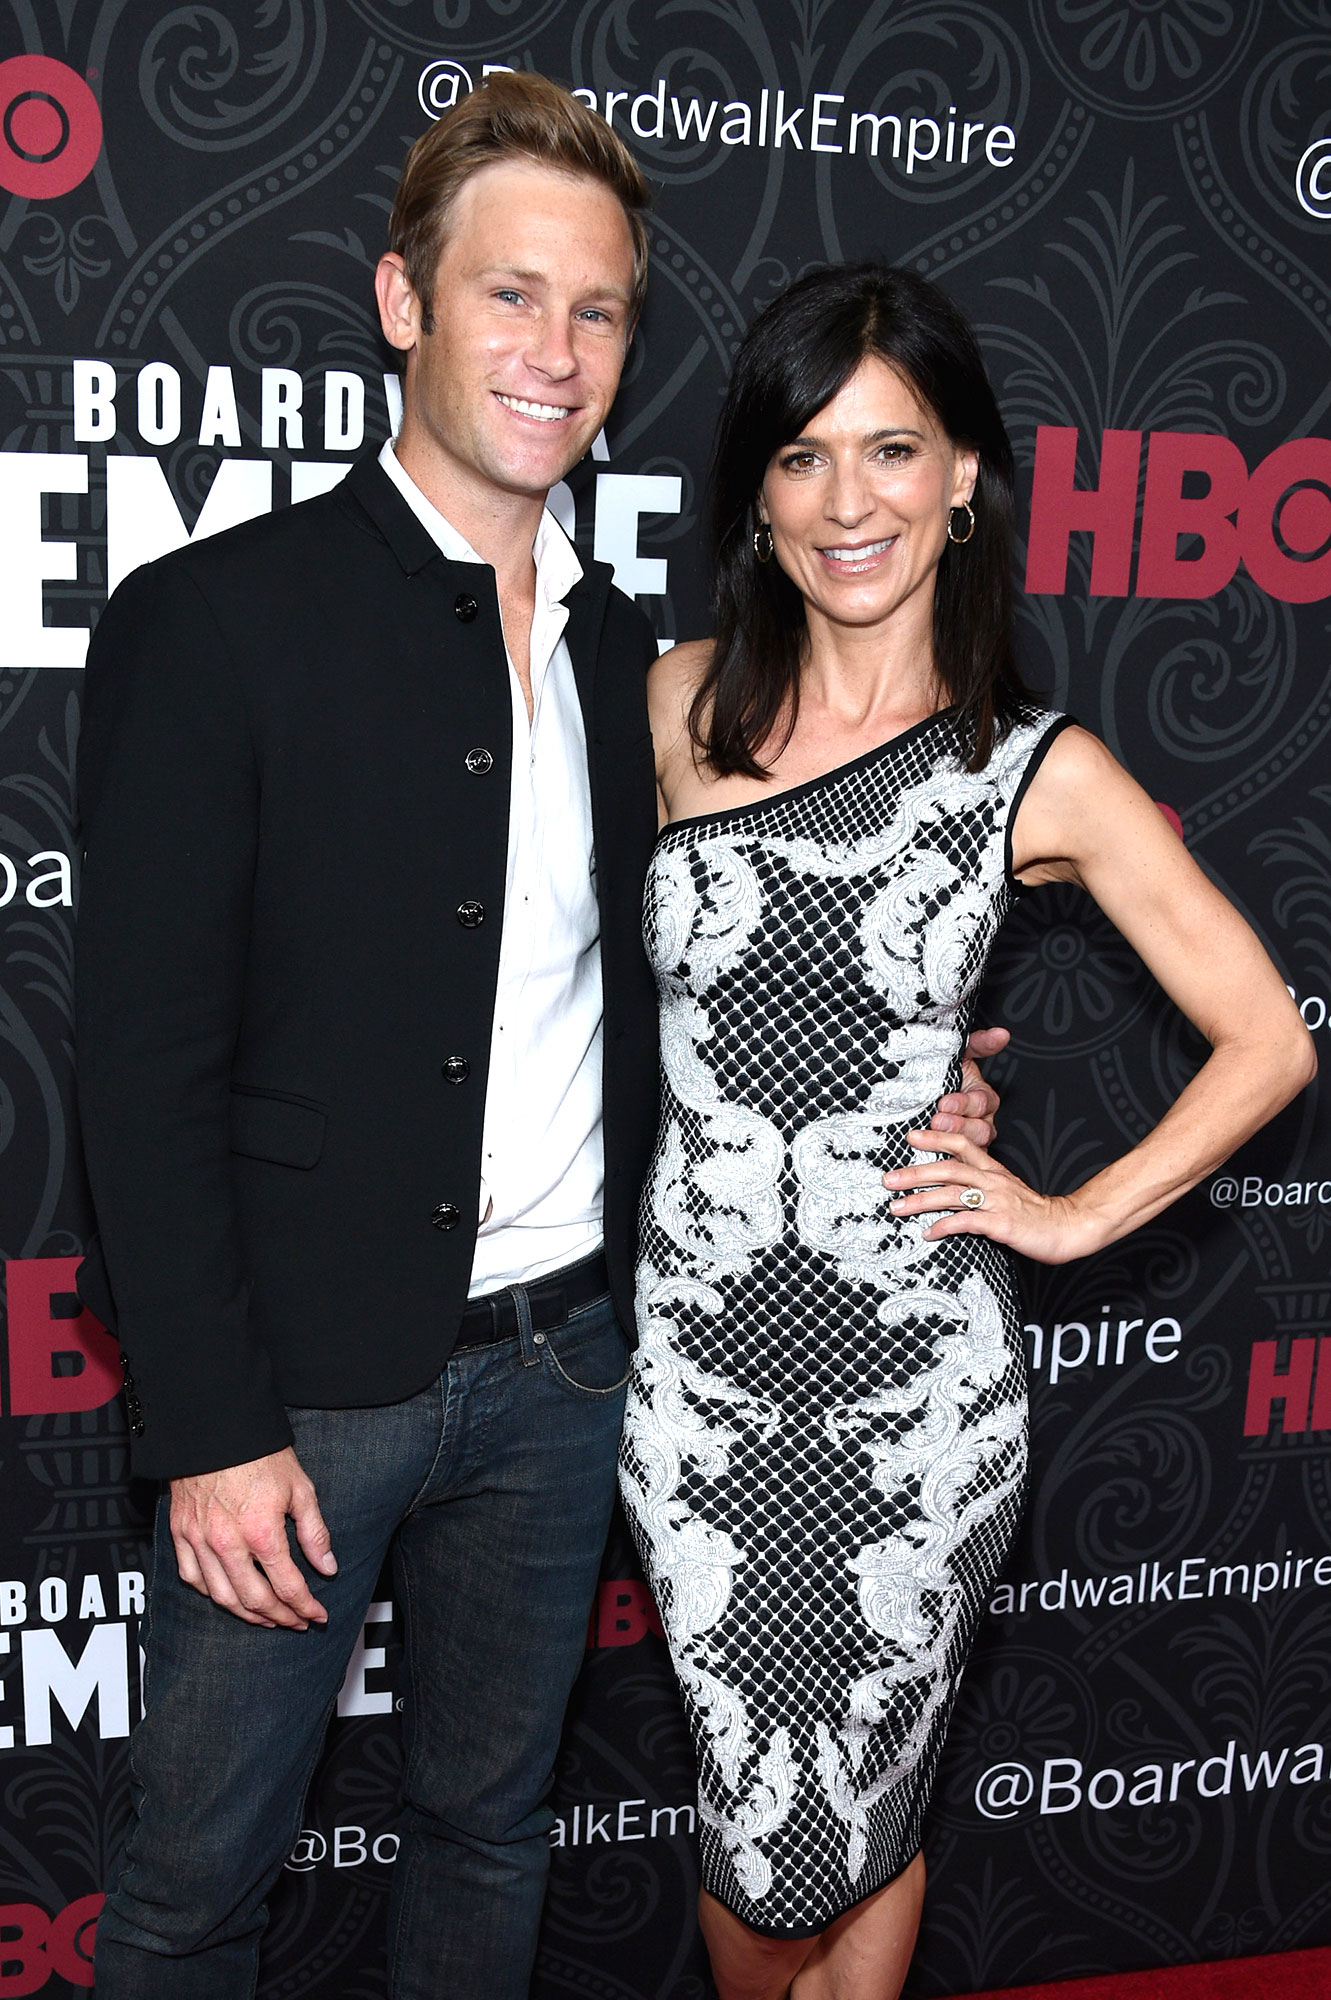 Perrey Reeves Aaron Fox - The Entourage alum and her husband secretly welcomed daughter Phoenix Delphine in October 2017, as her rep exclusively confirmed to Us the following March.